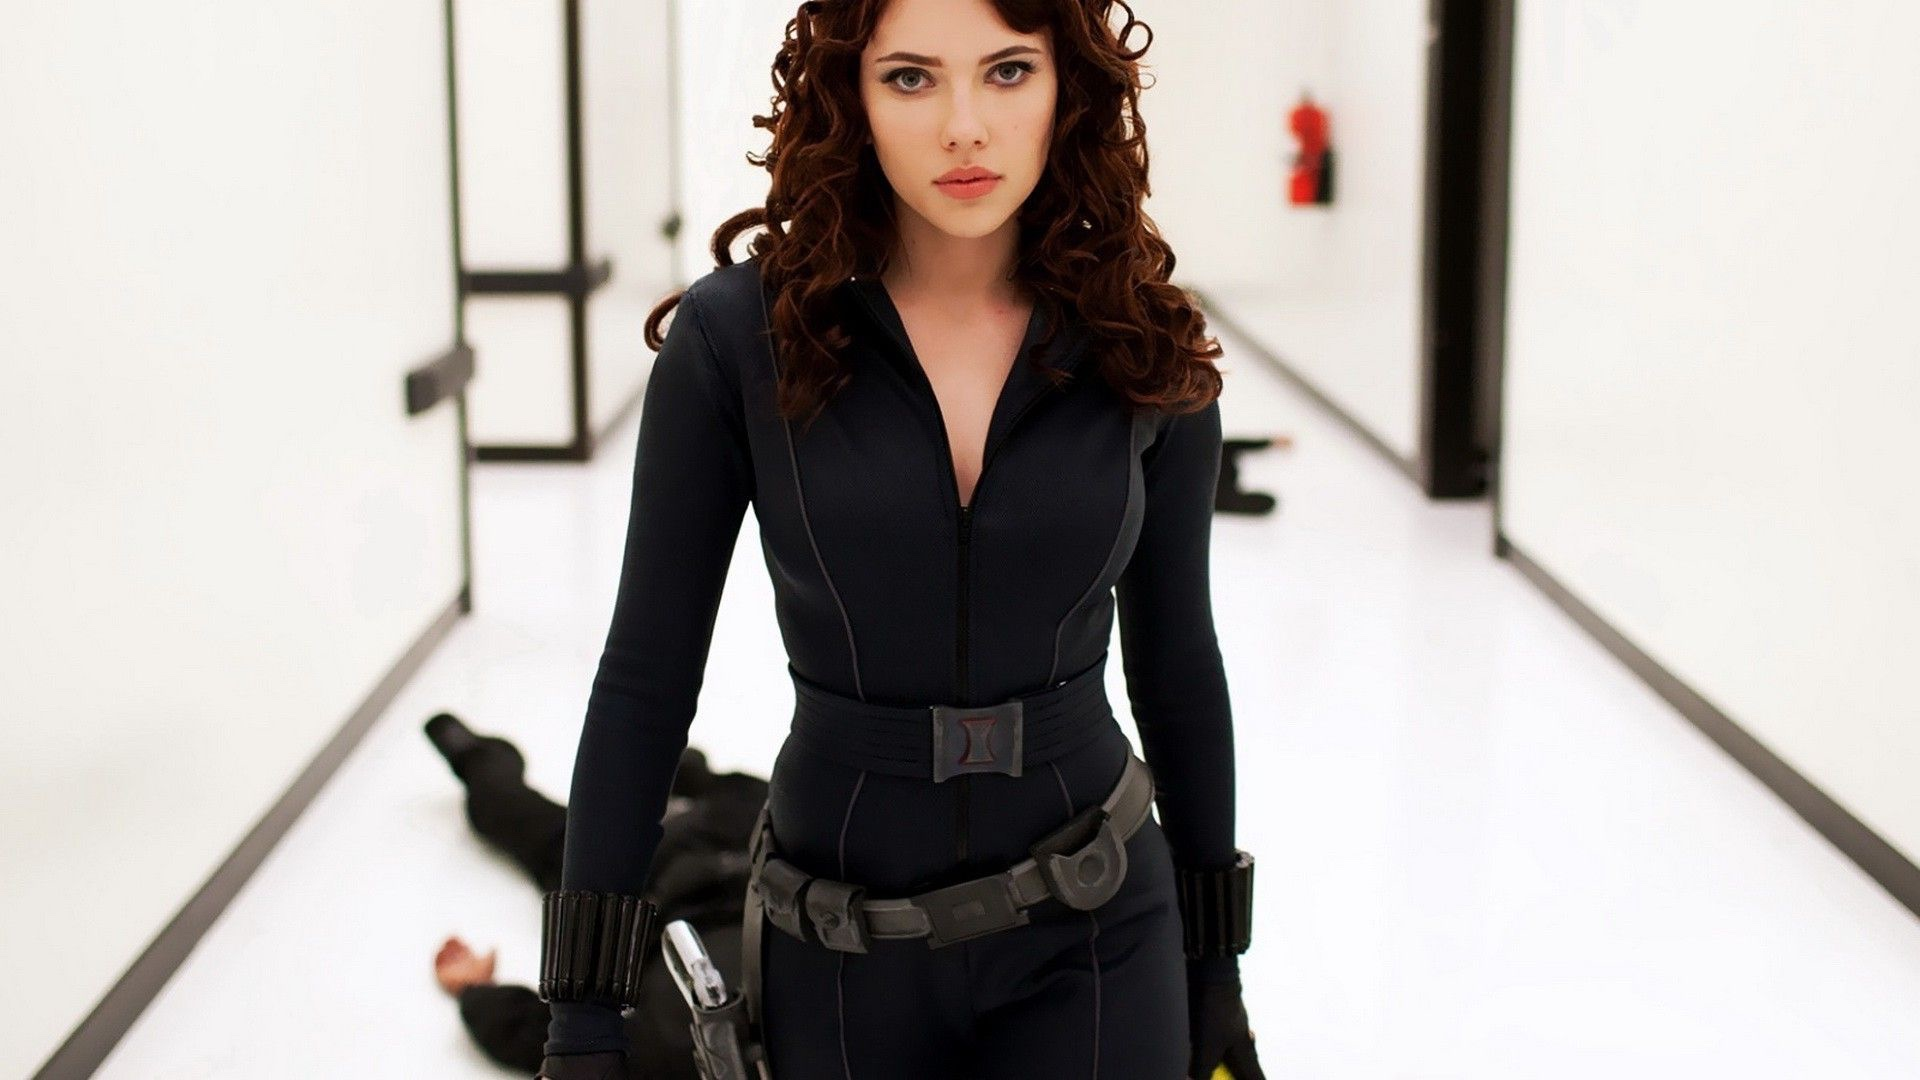 marvels-black-widow-solo-film-will-reportedly-be-a-prequel-that-involves-the-winter-solider-social.jpg